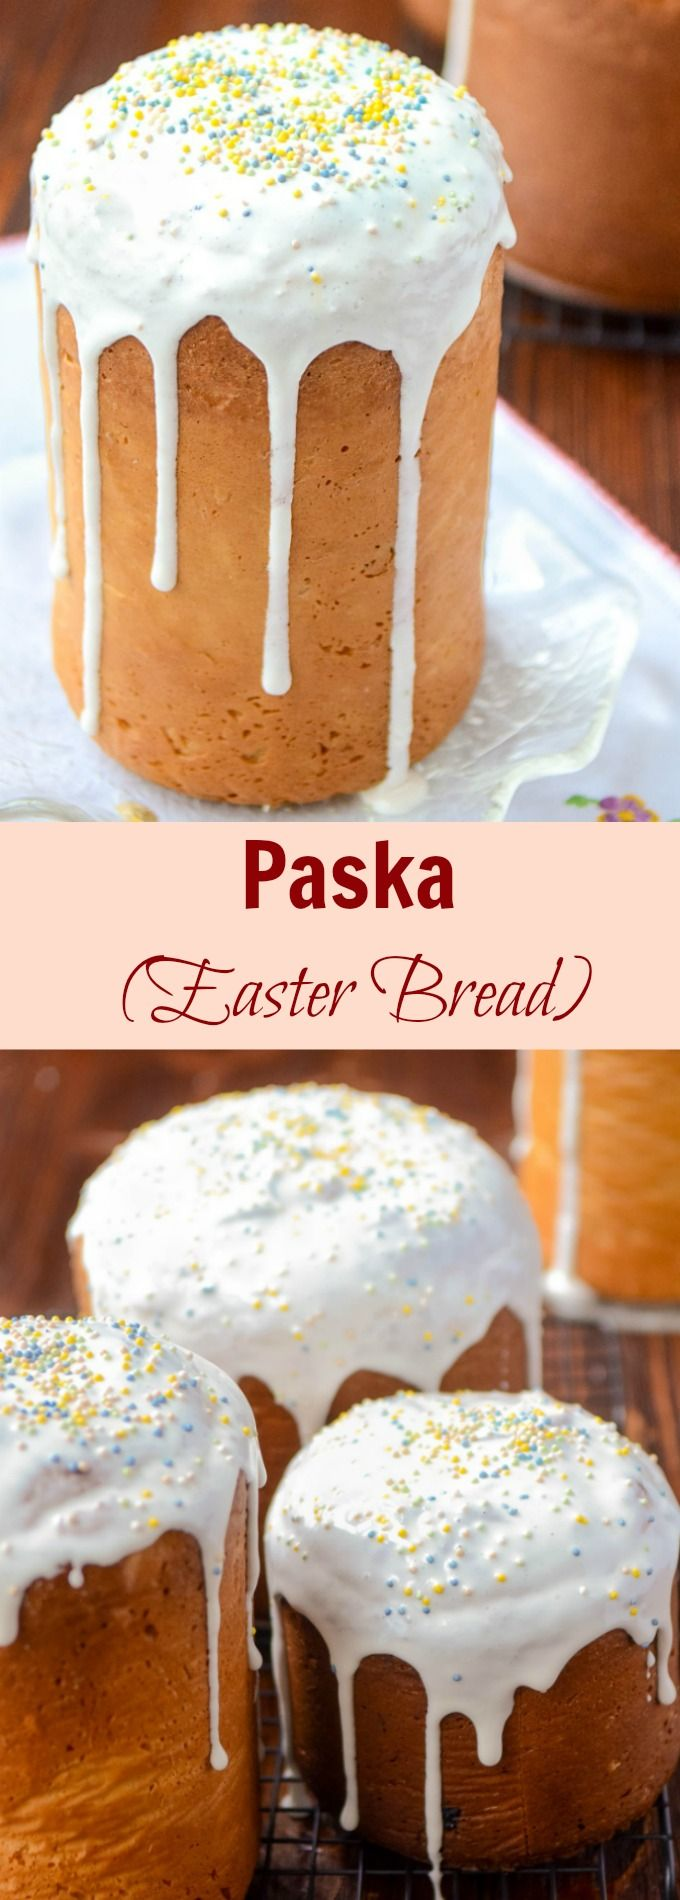 Looking for traditional easter recipes try paska ukrainian and looking for traditional easter recipes try paska ukrainian and russian easter bread that is forumfinder Gallery